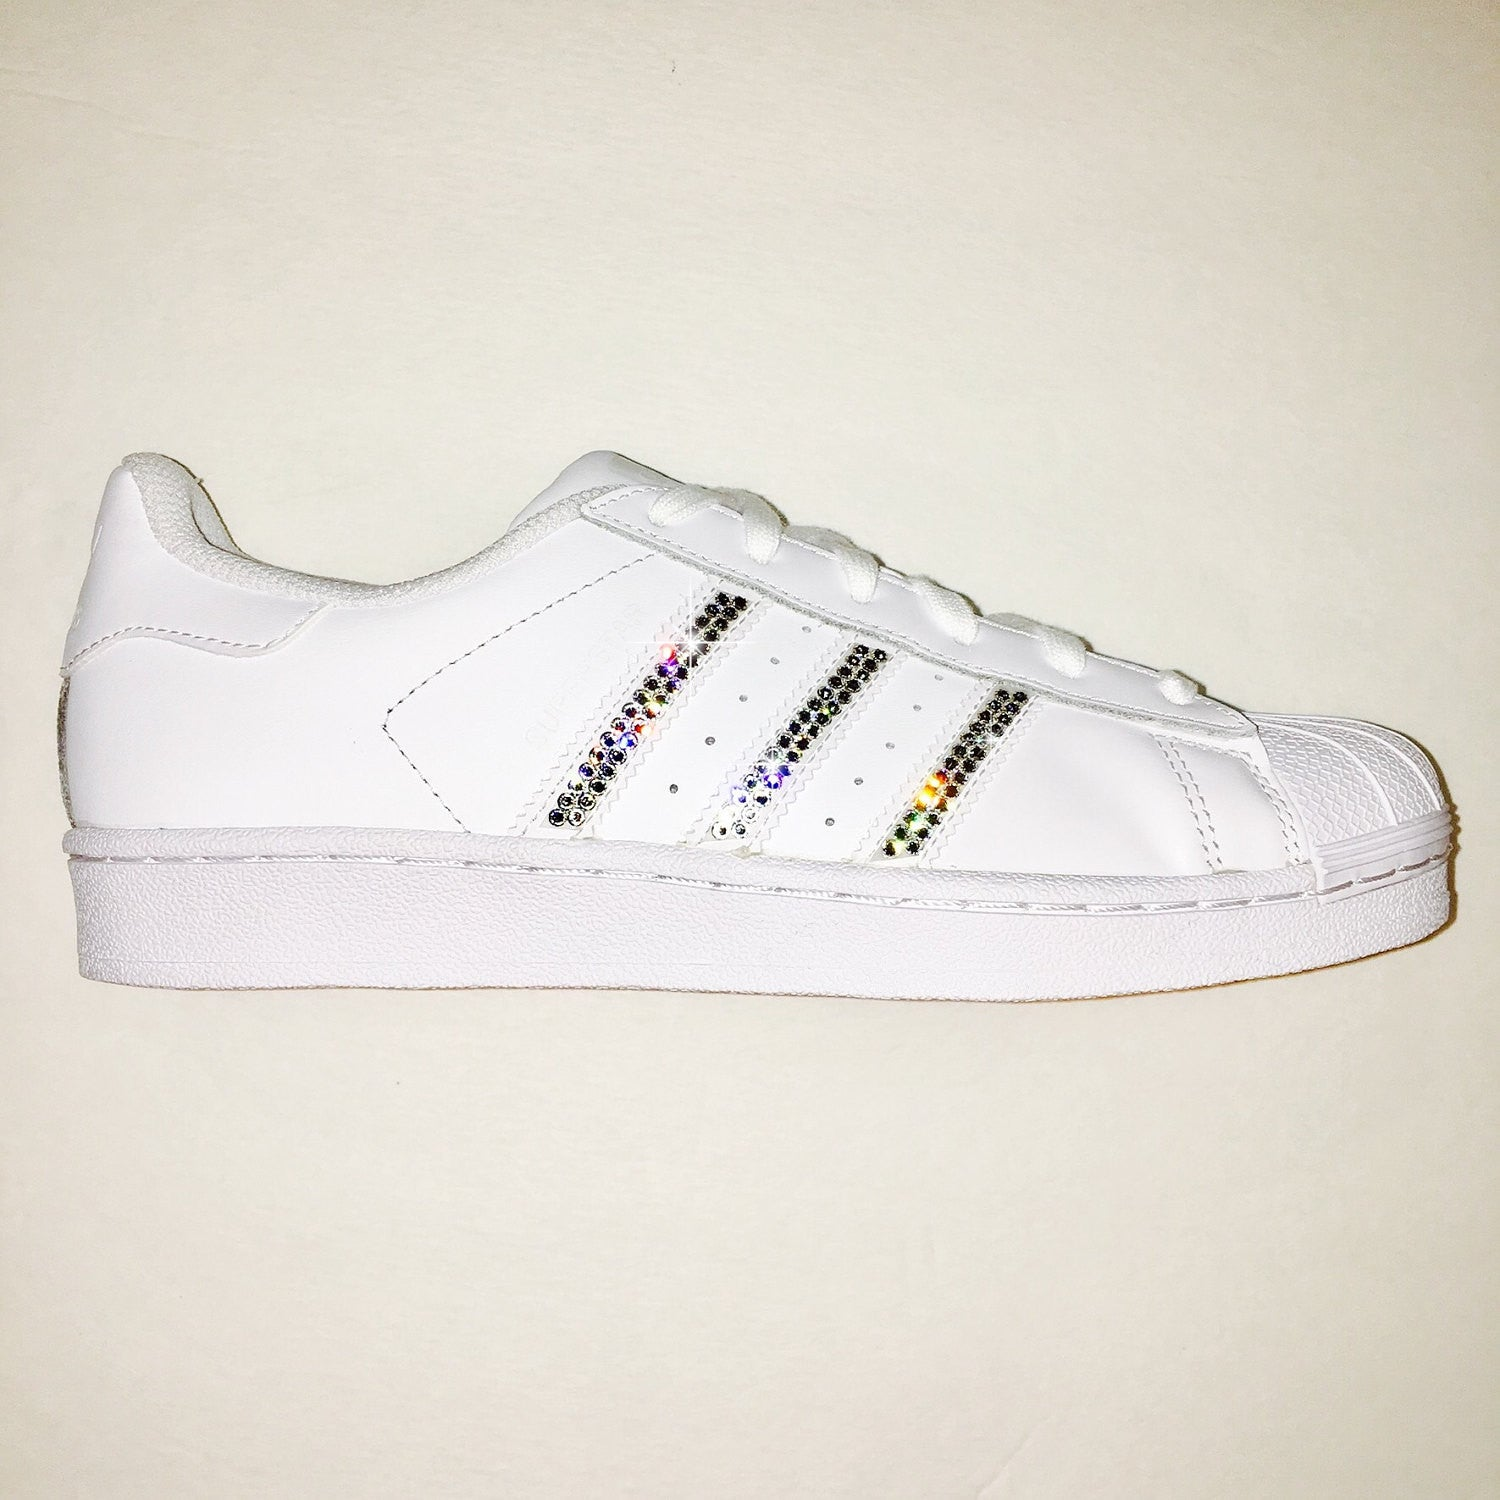 Bling Adidas with Swarovski Crystals   Women s Original Superstar Shoes  Bedazzled w  CLEAR Swarovski Crystal ... a5f2837f52e4